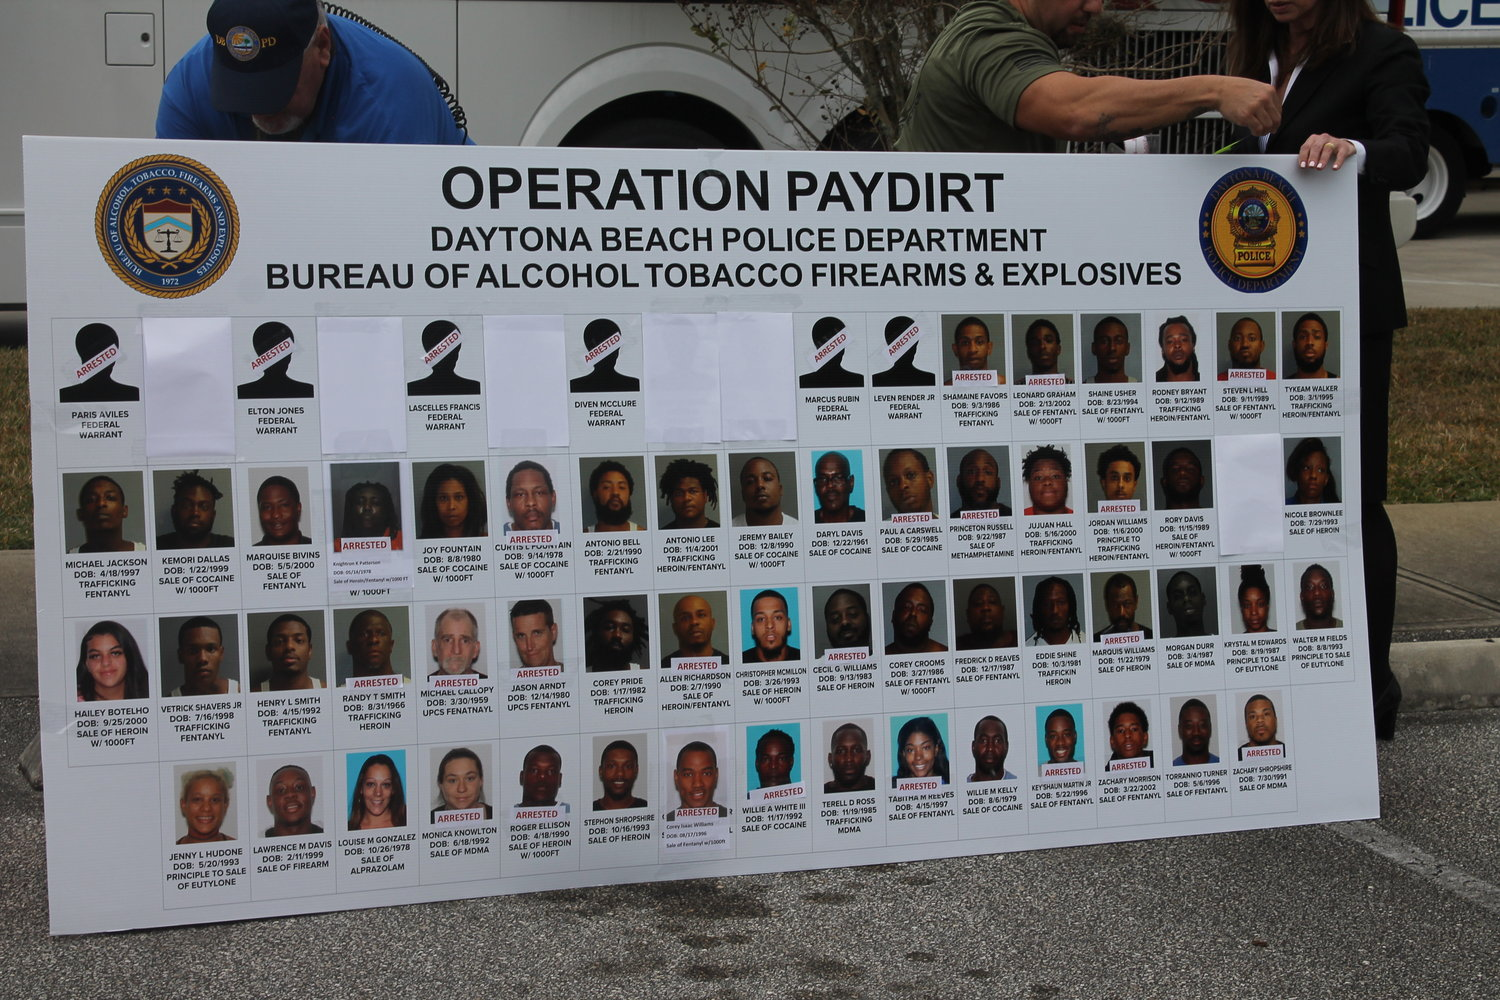 The names and faces of the 60+ individuals that have been charged so far in the operation. 24 have been arrested